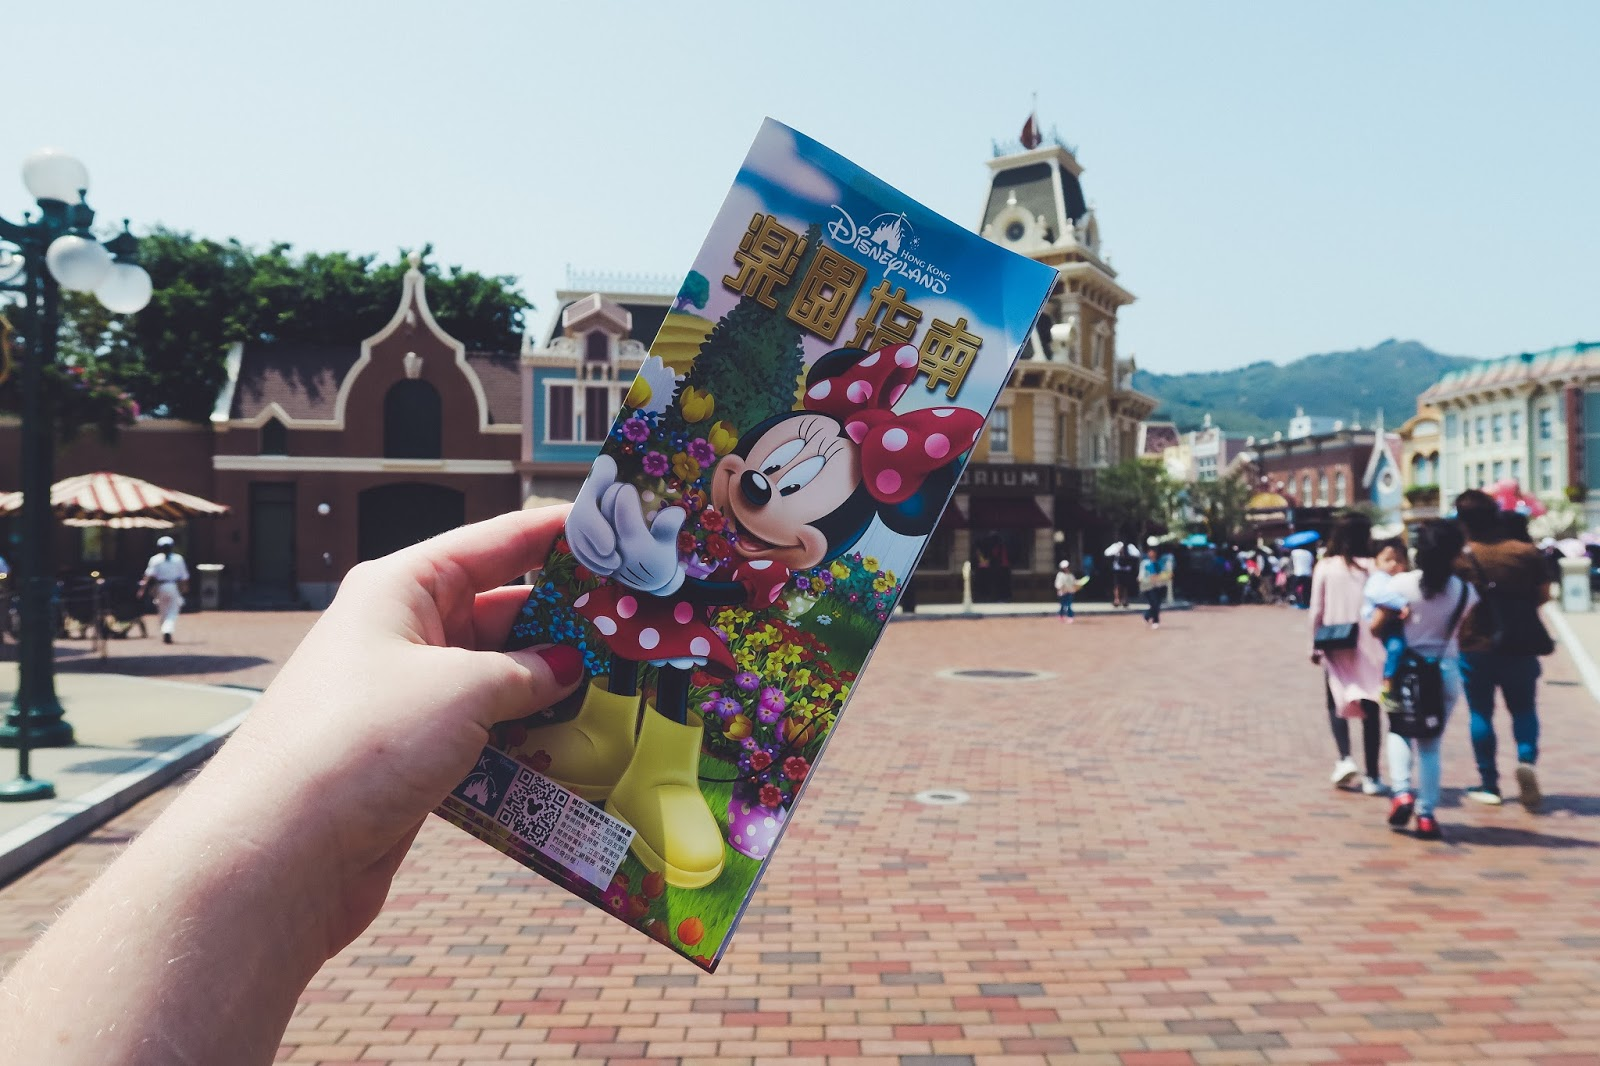 Disneyland Hong Kong 香港迪士尼樂園 | 3 Day Travel Guide in Hong Kong